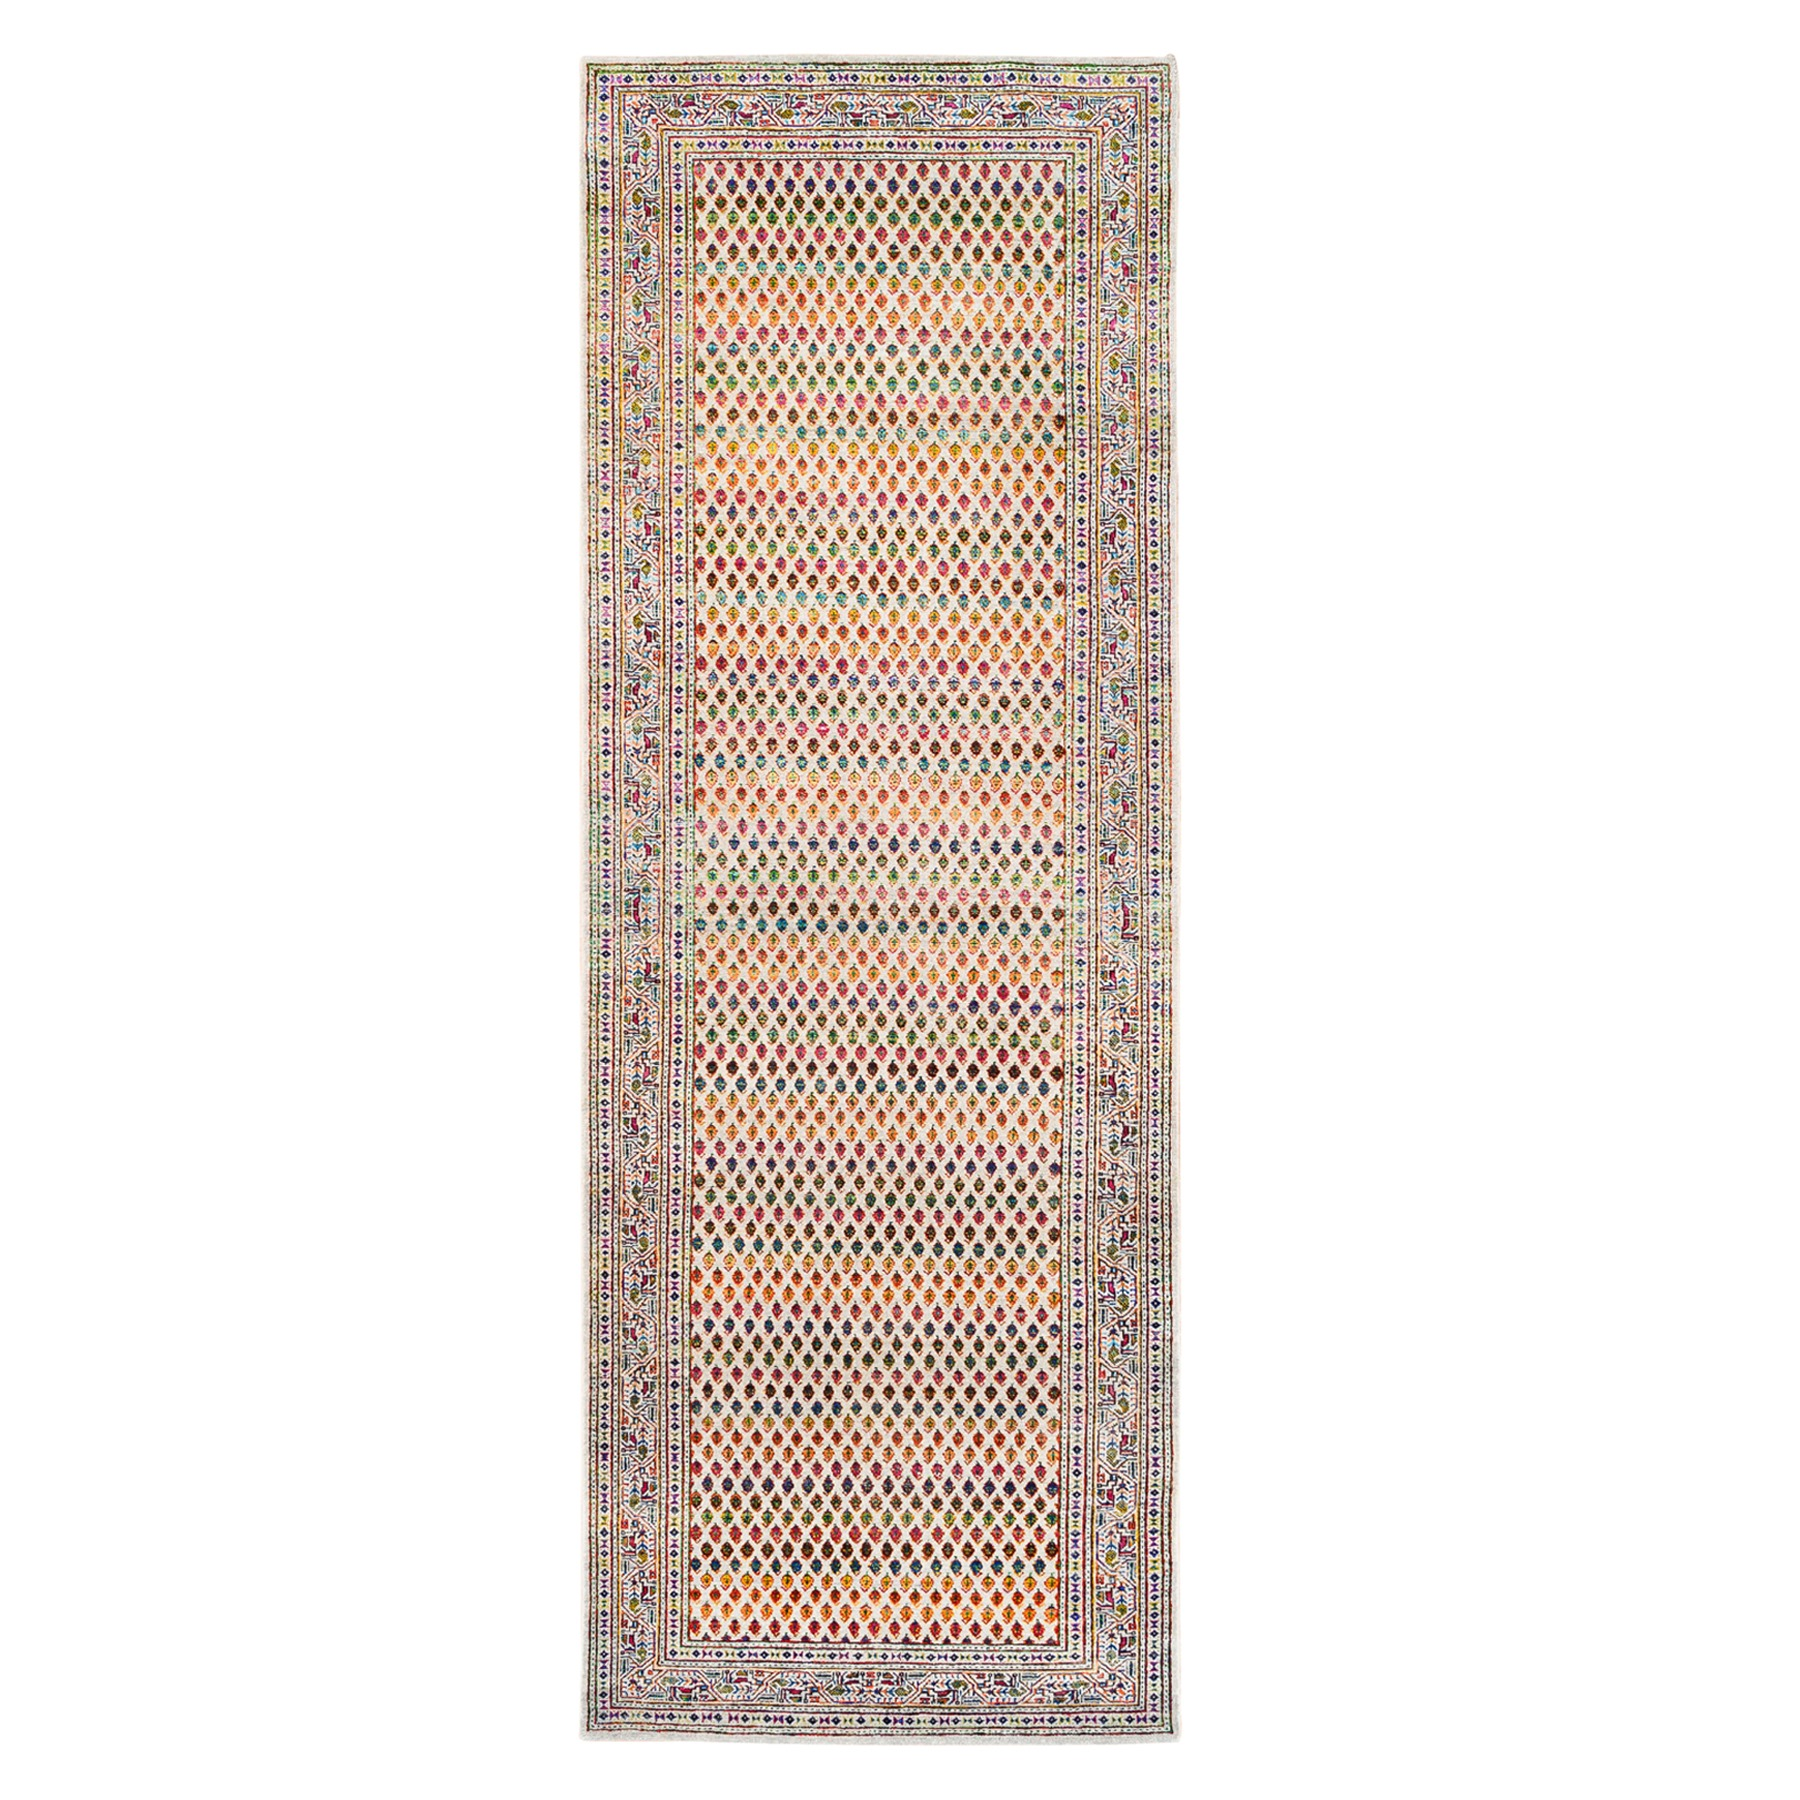 Modern & Contemporary Rugs LUV560988